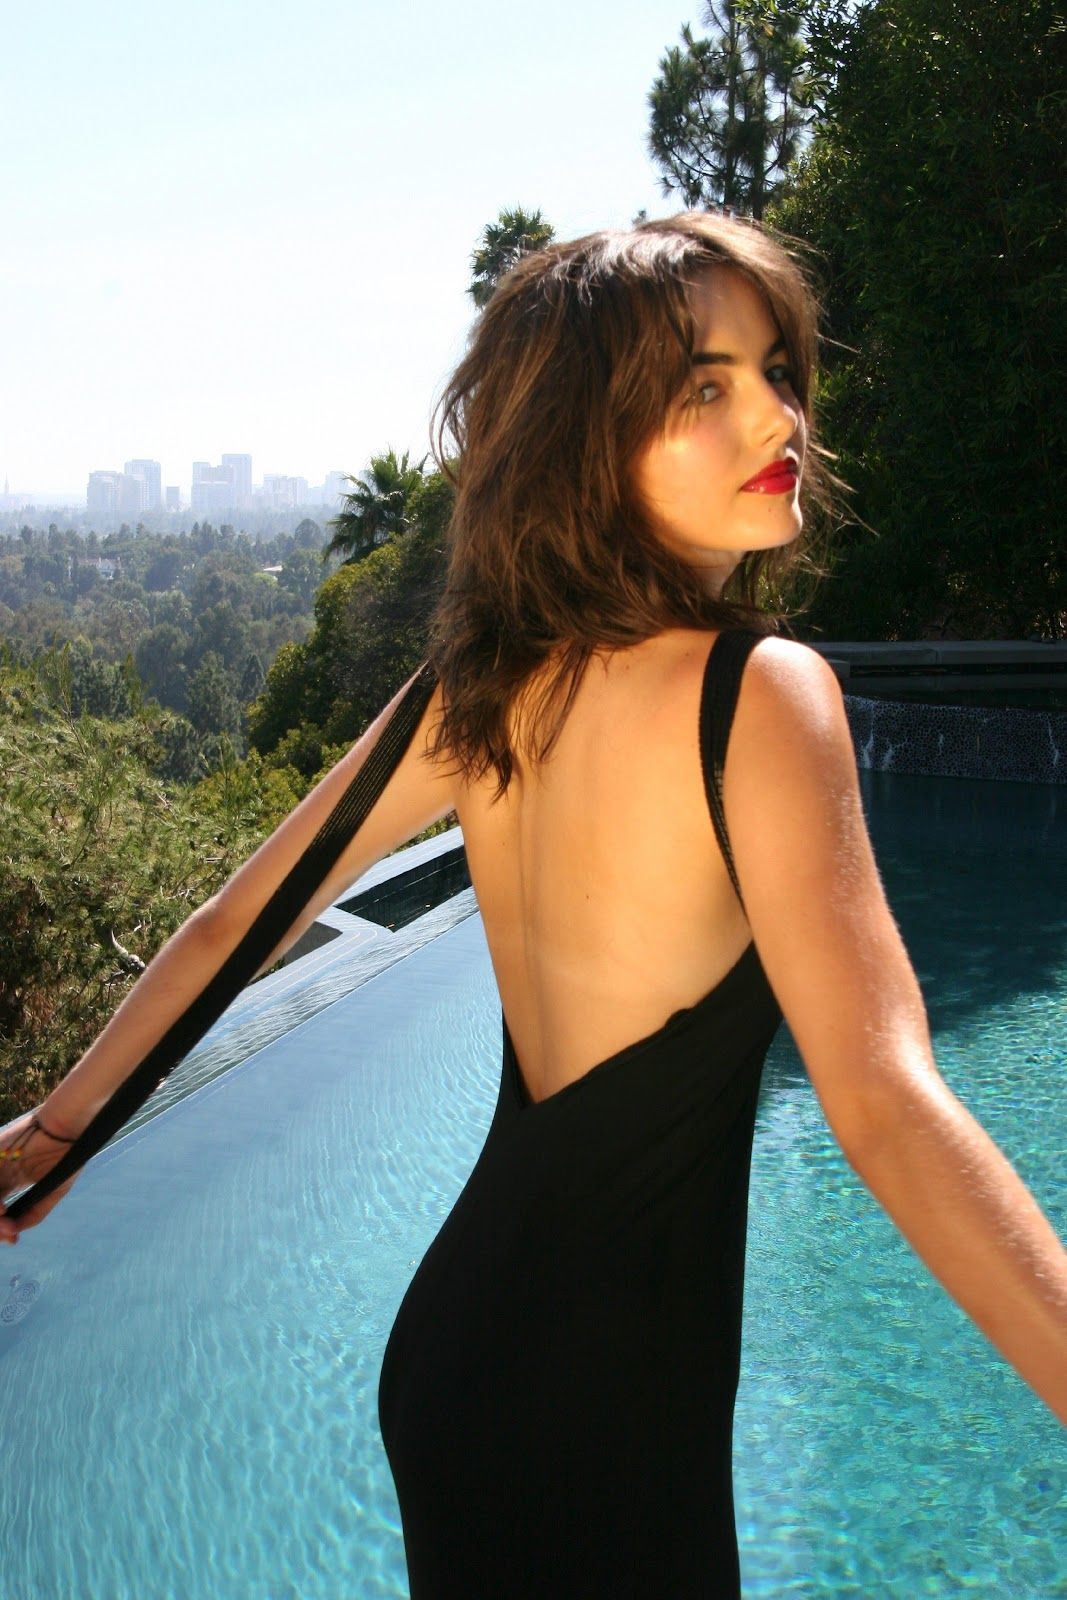 Camilla belle hot porn girl there